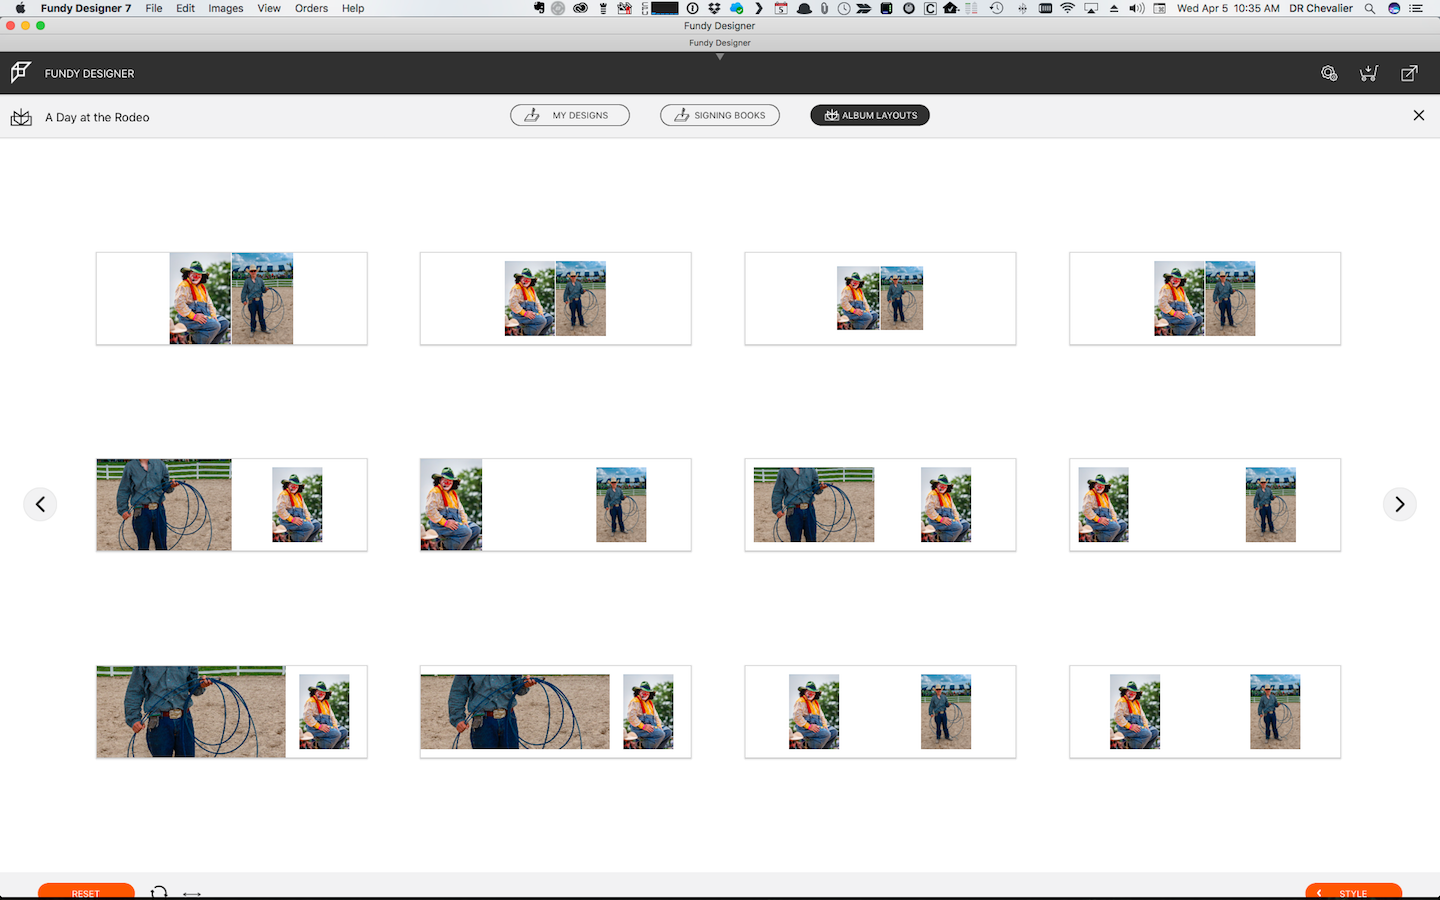 Just one screen of the myriad layouts programmed into Fundy Designer